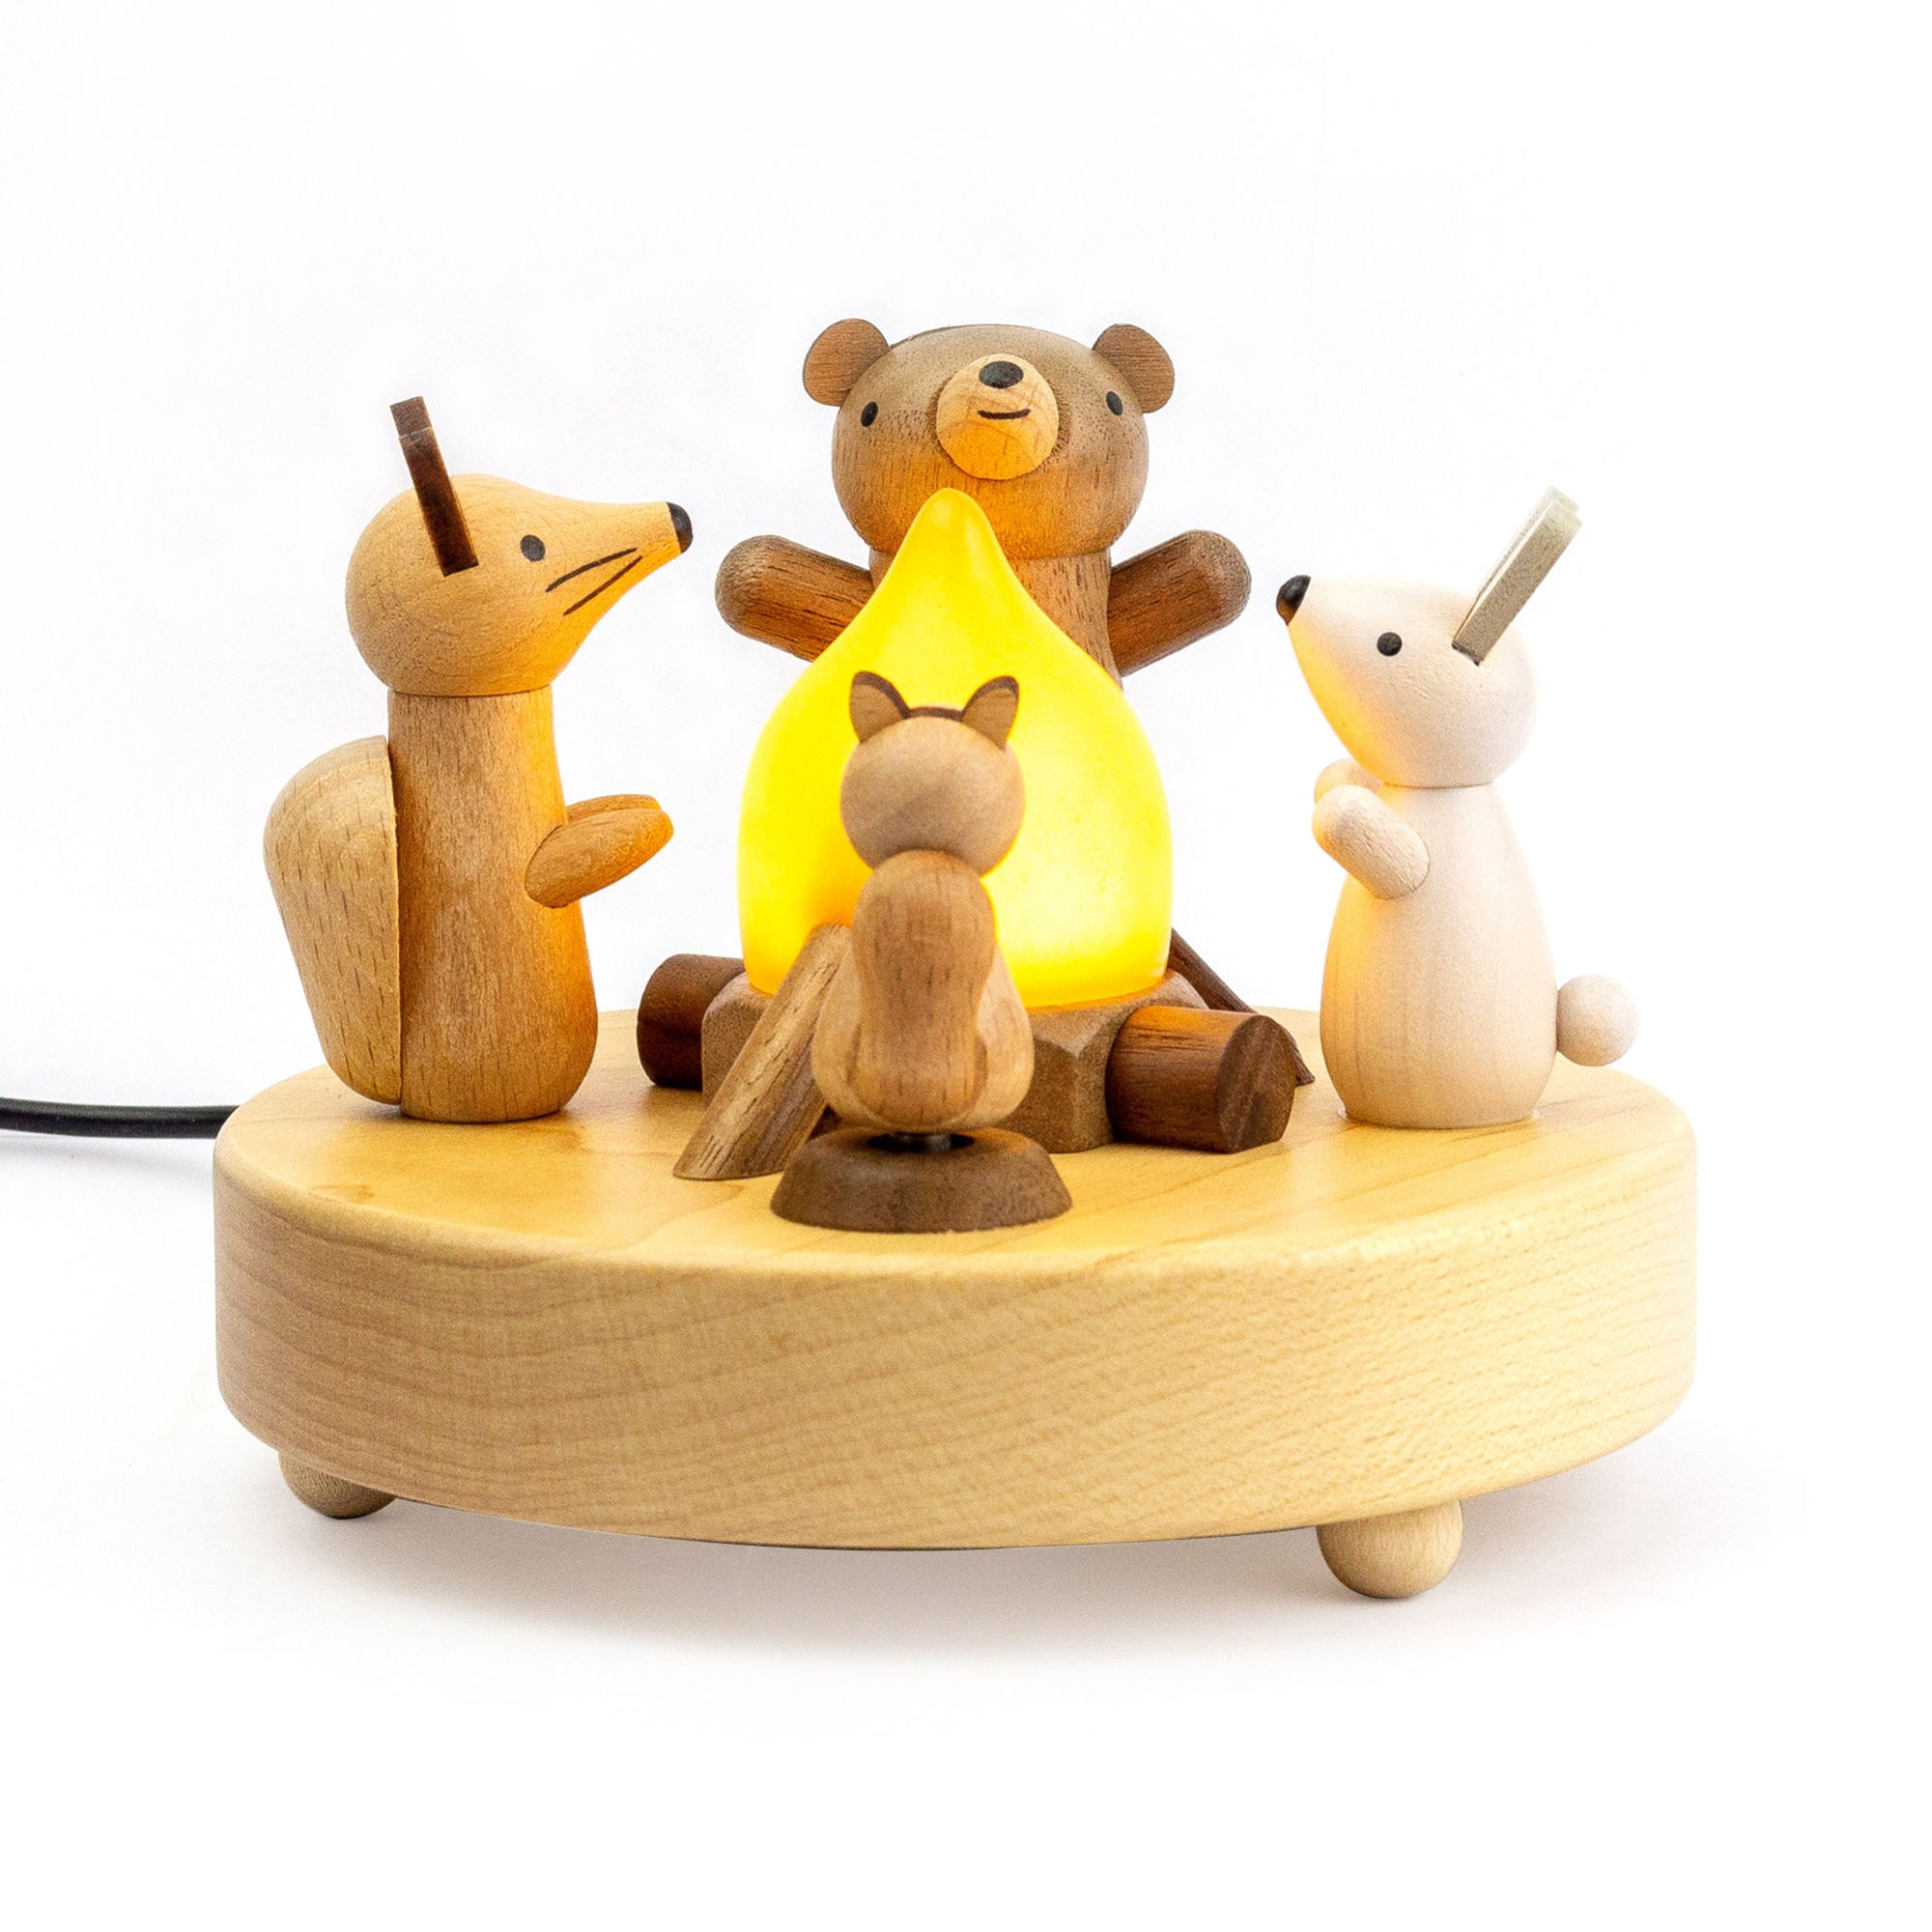 Wooderful Life wooden lamp, animals campfire